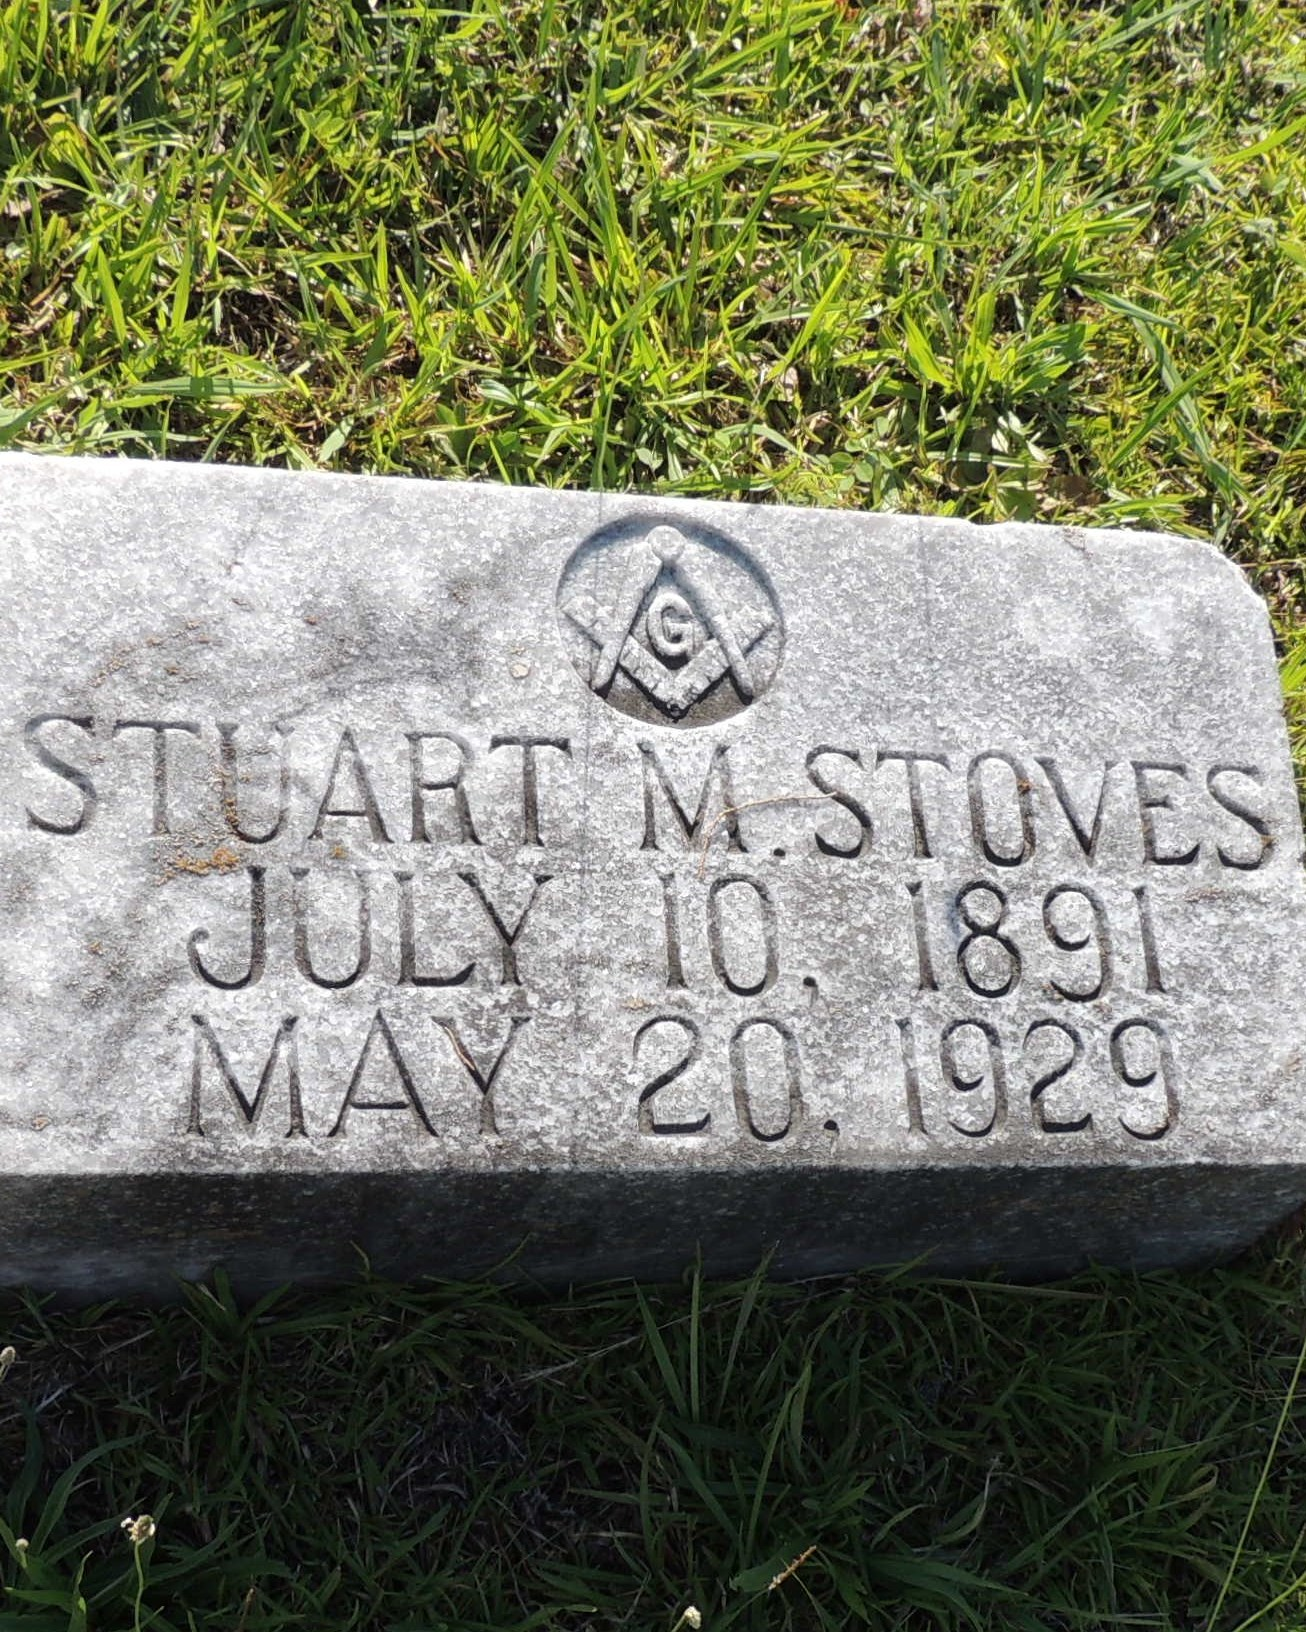 Night Policeman Stuart McClay Stoves | Tennessee Coal, Iron and Railroad Company Police Department, Railroad Police